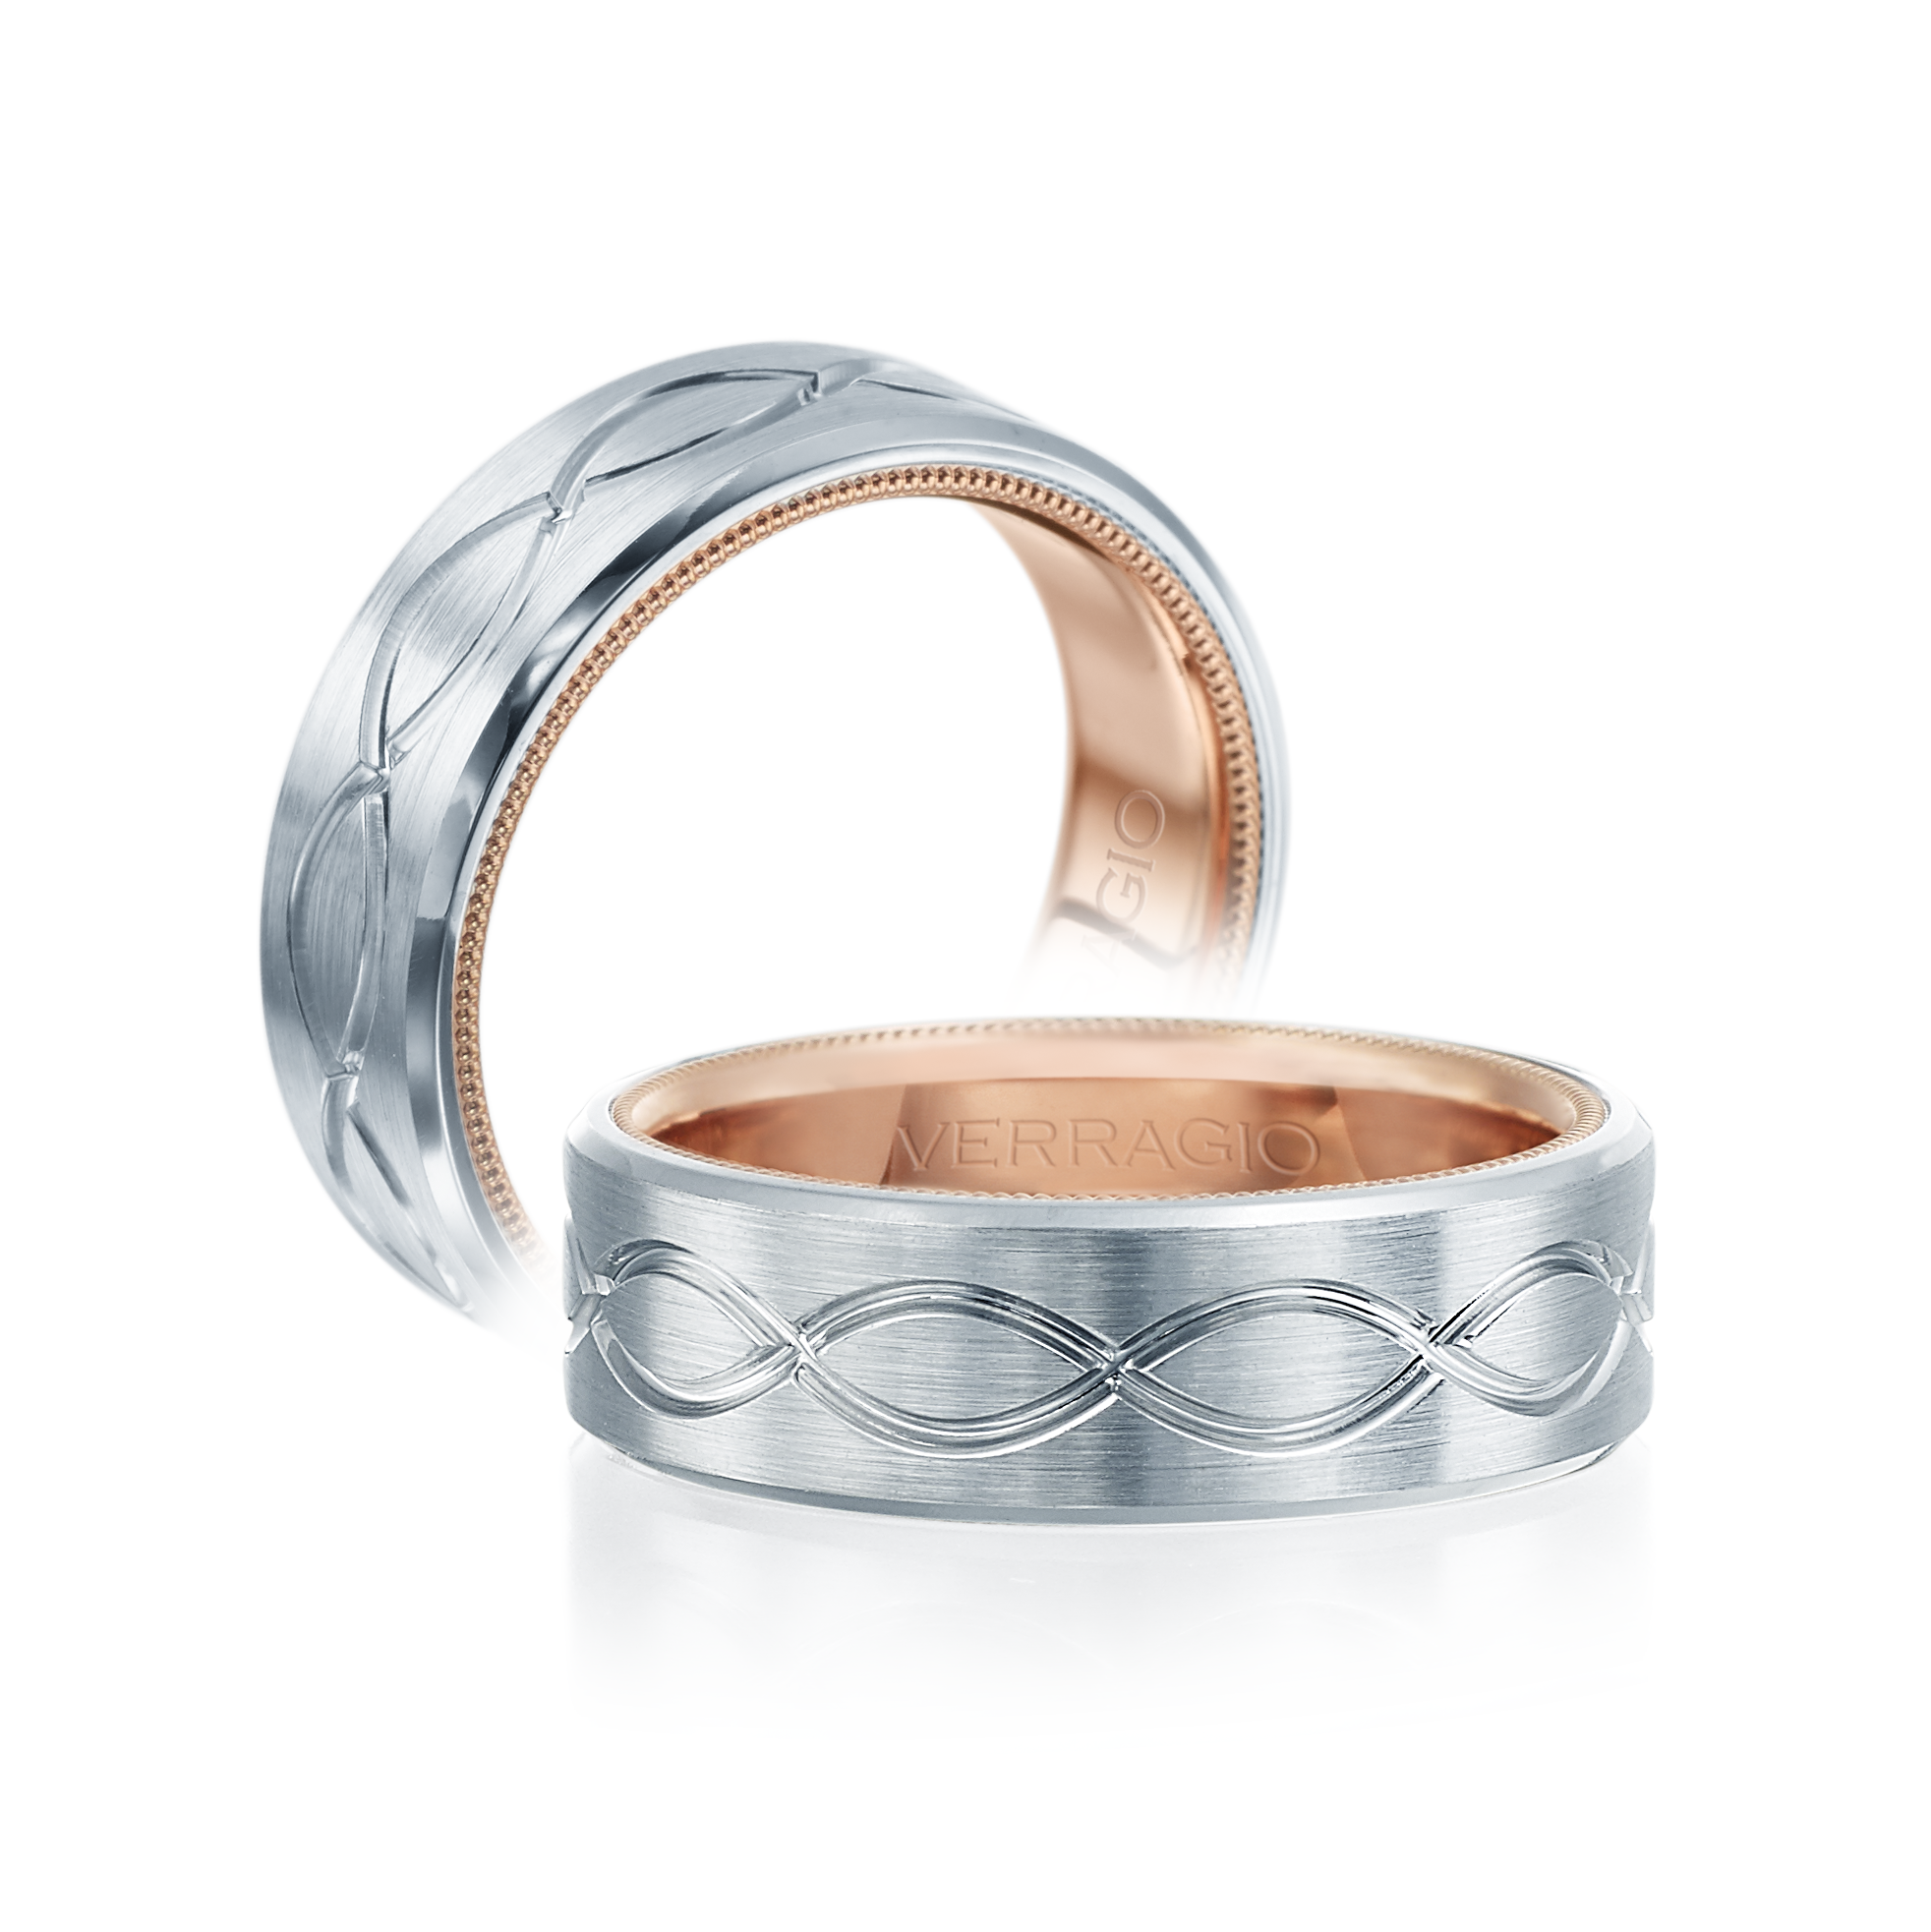 Wedding Bands And Wedding Rings: What's The Difference